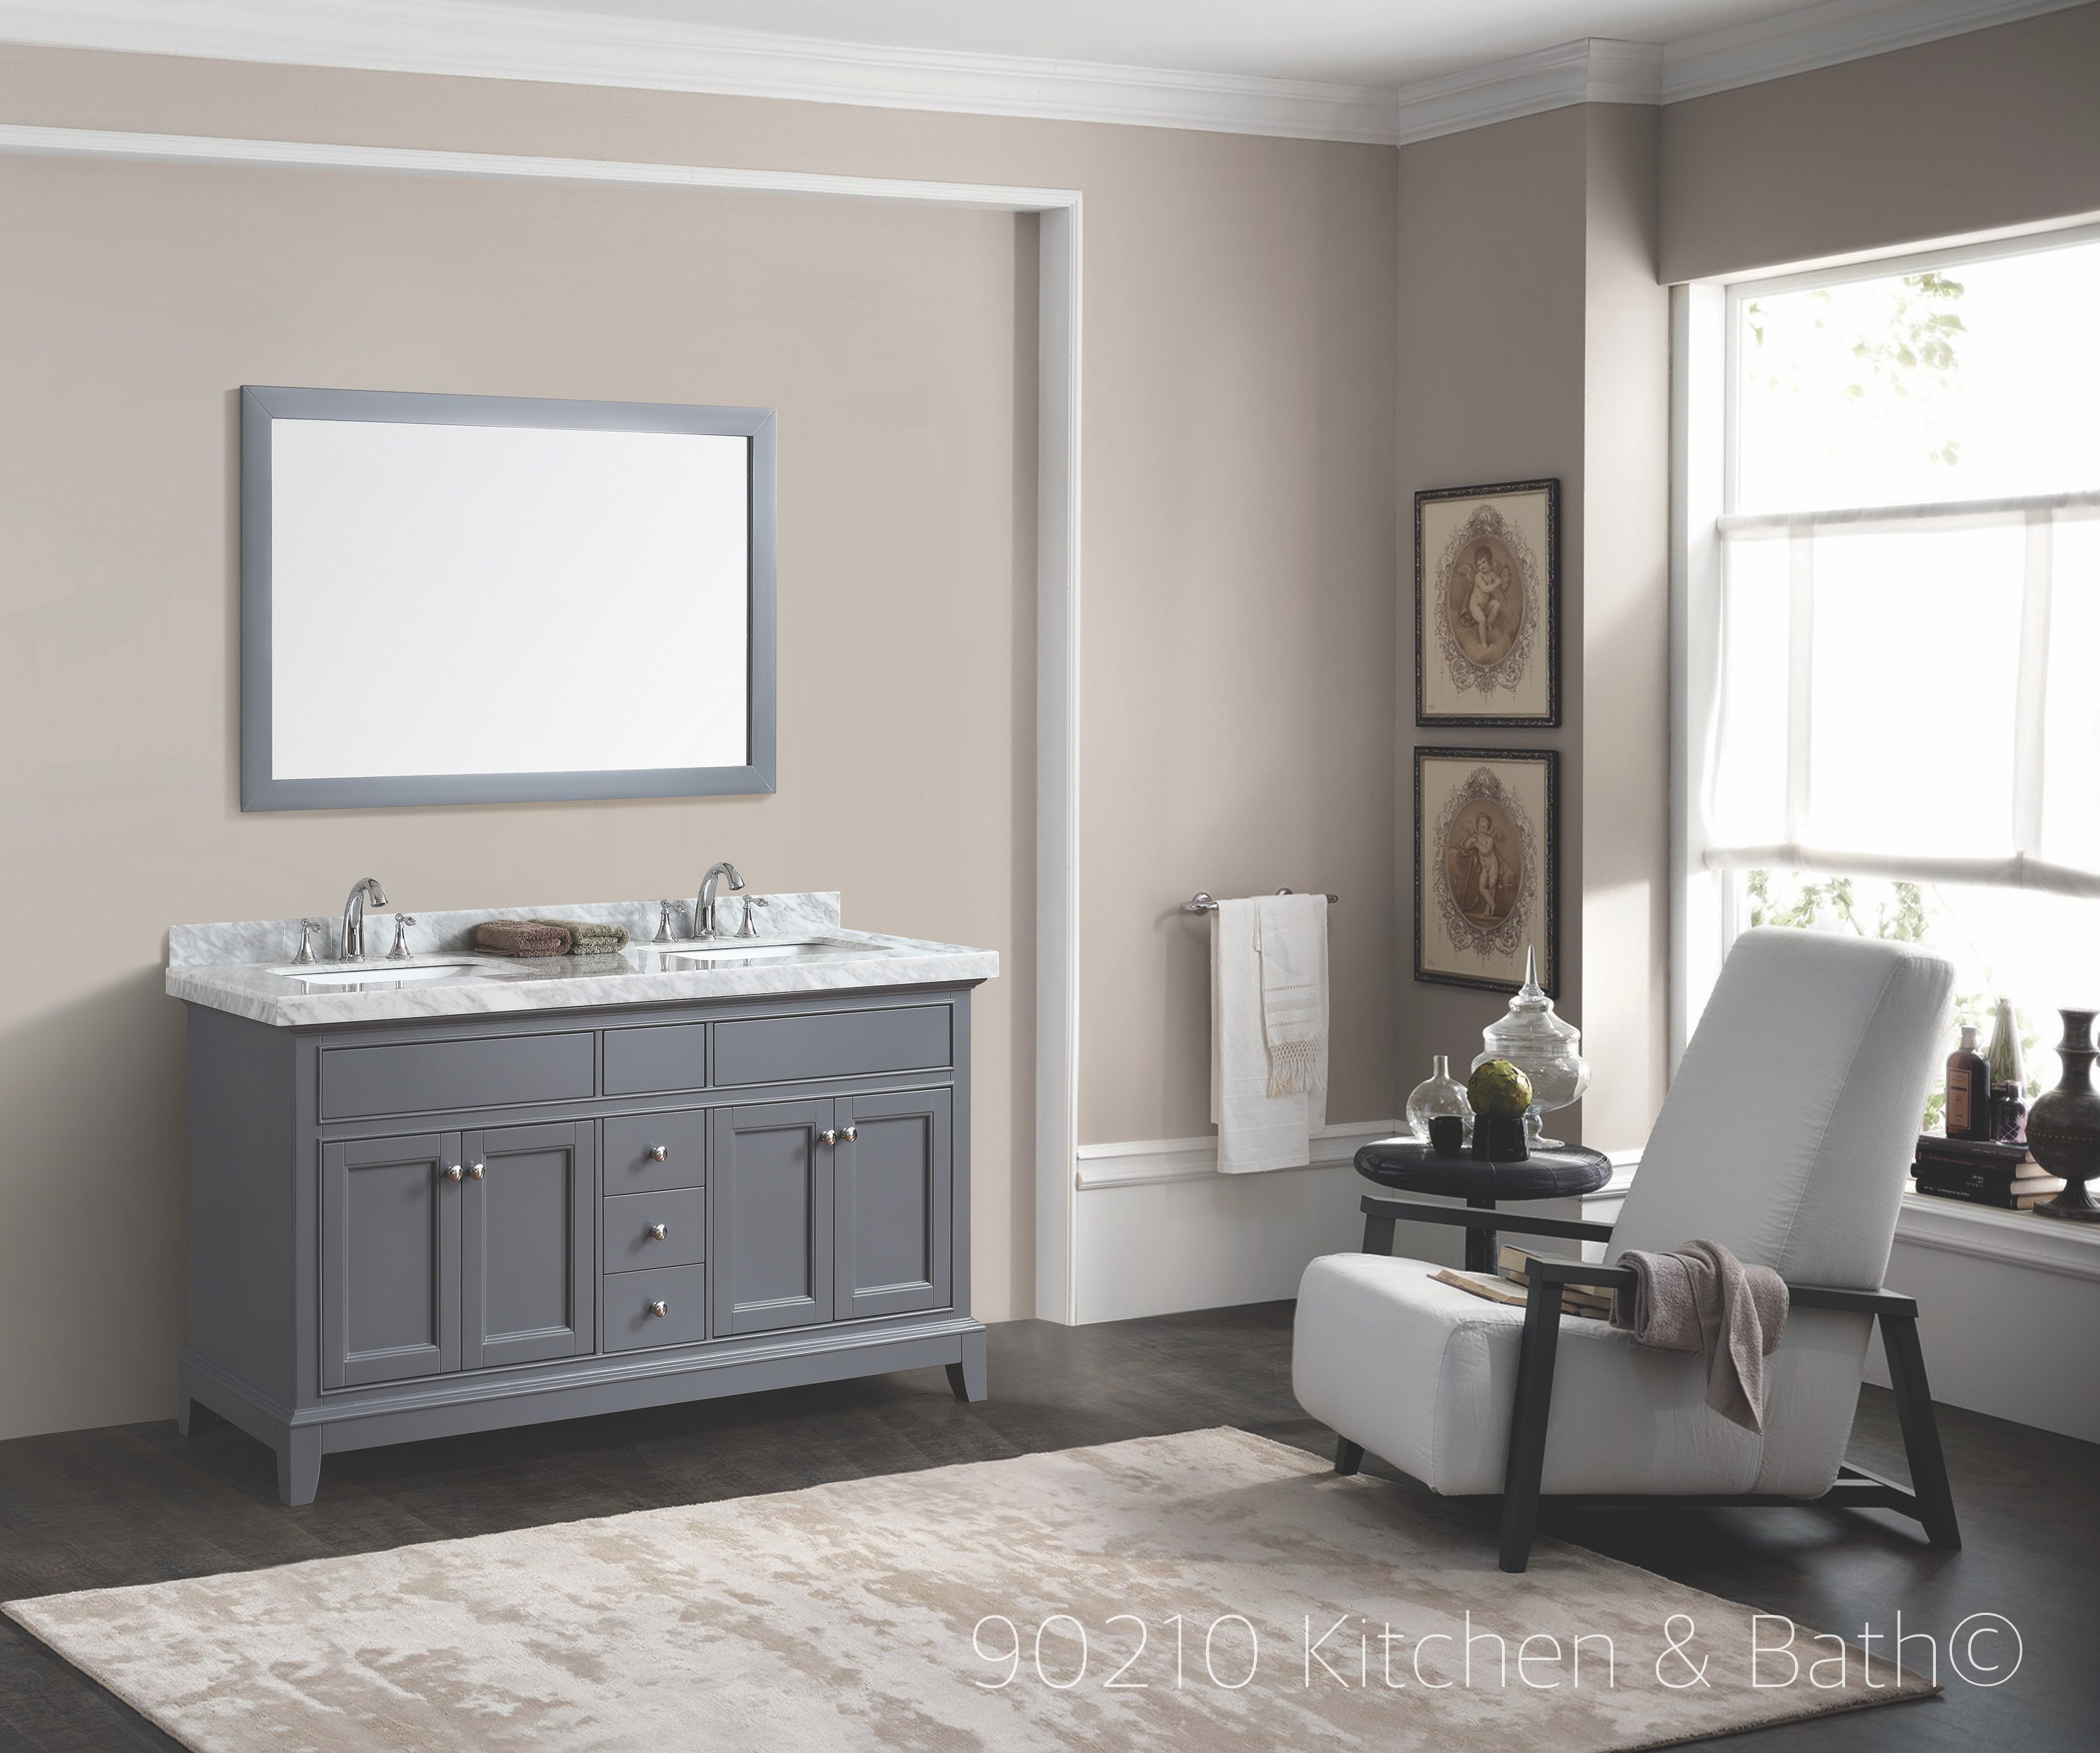 Our Daytona Classic Vanity Is Very Popular This Year For DIY Bathroom  Remodels